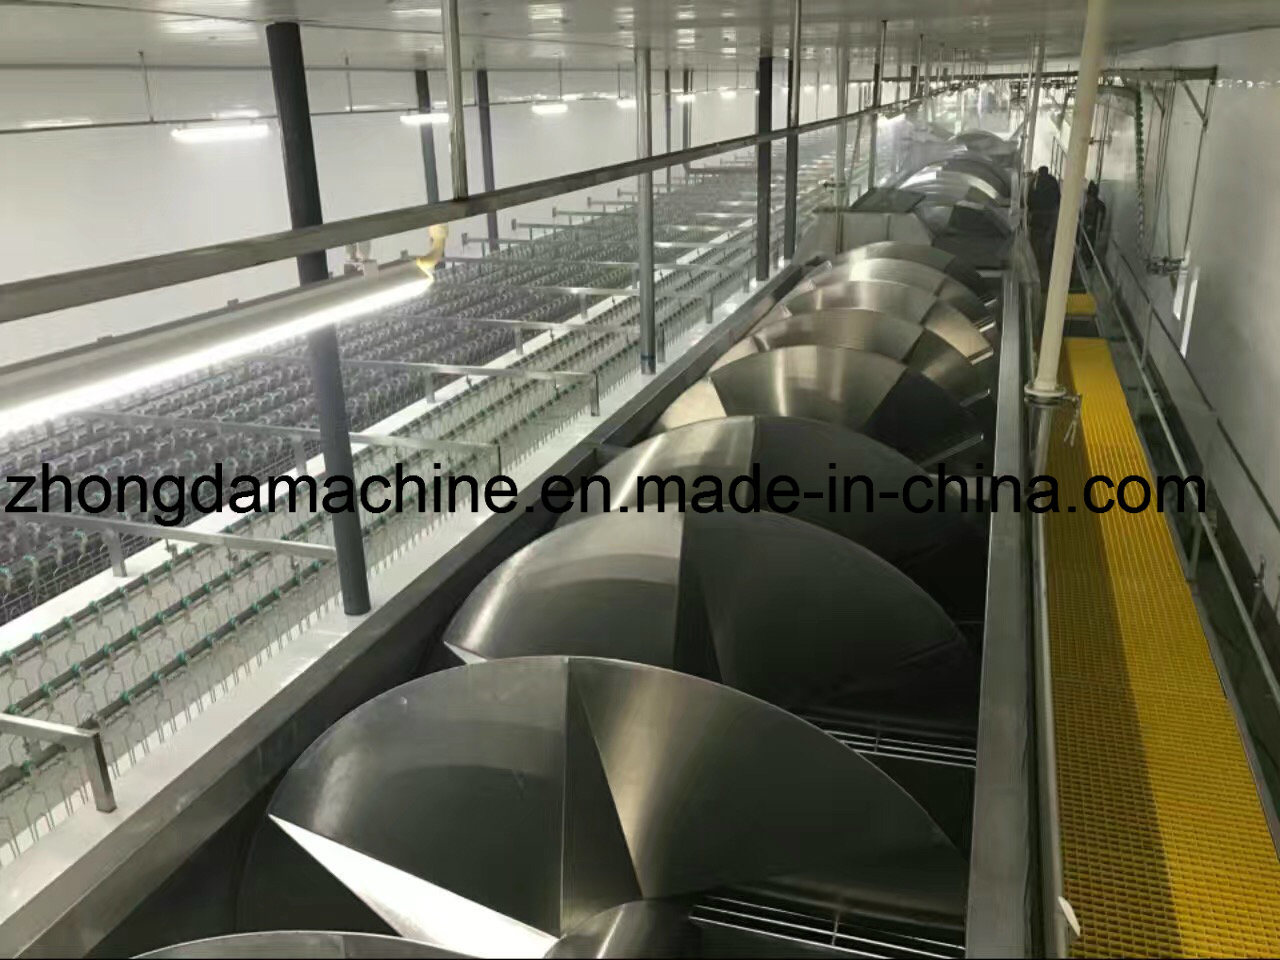 Full Chicken Slaughter Equipment in Middle East